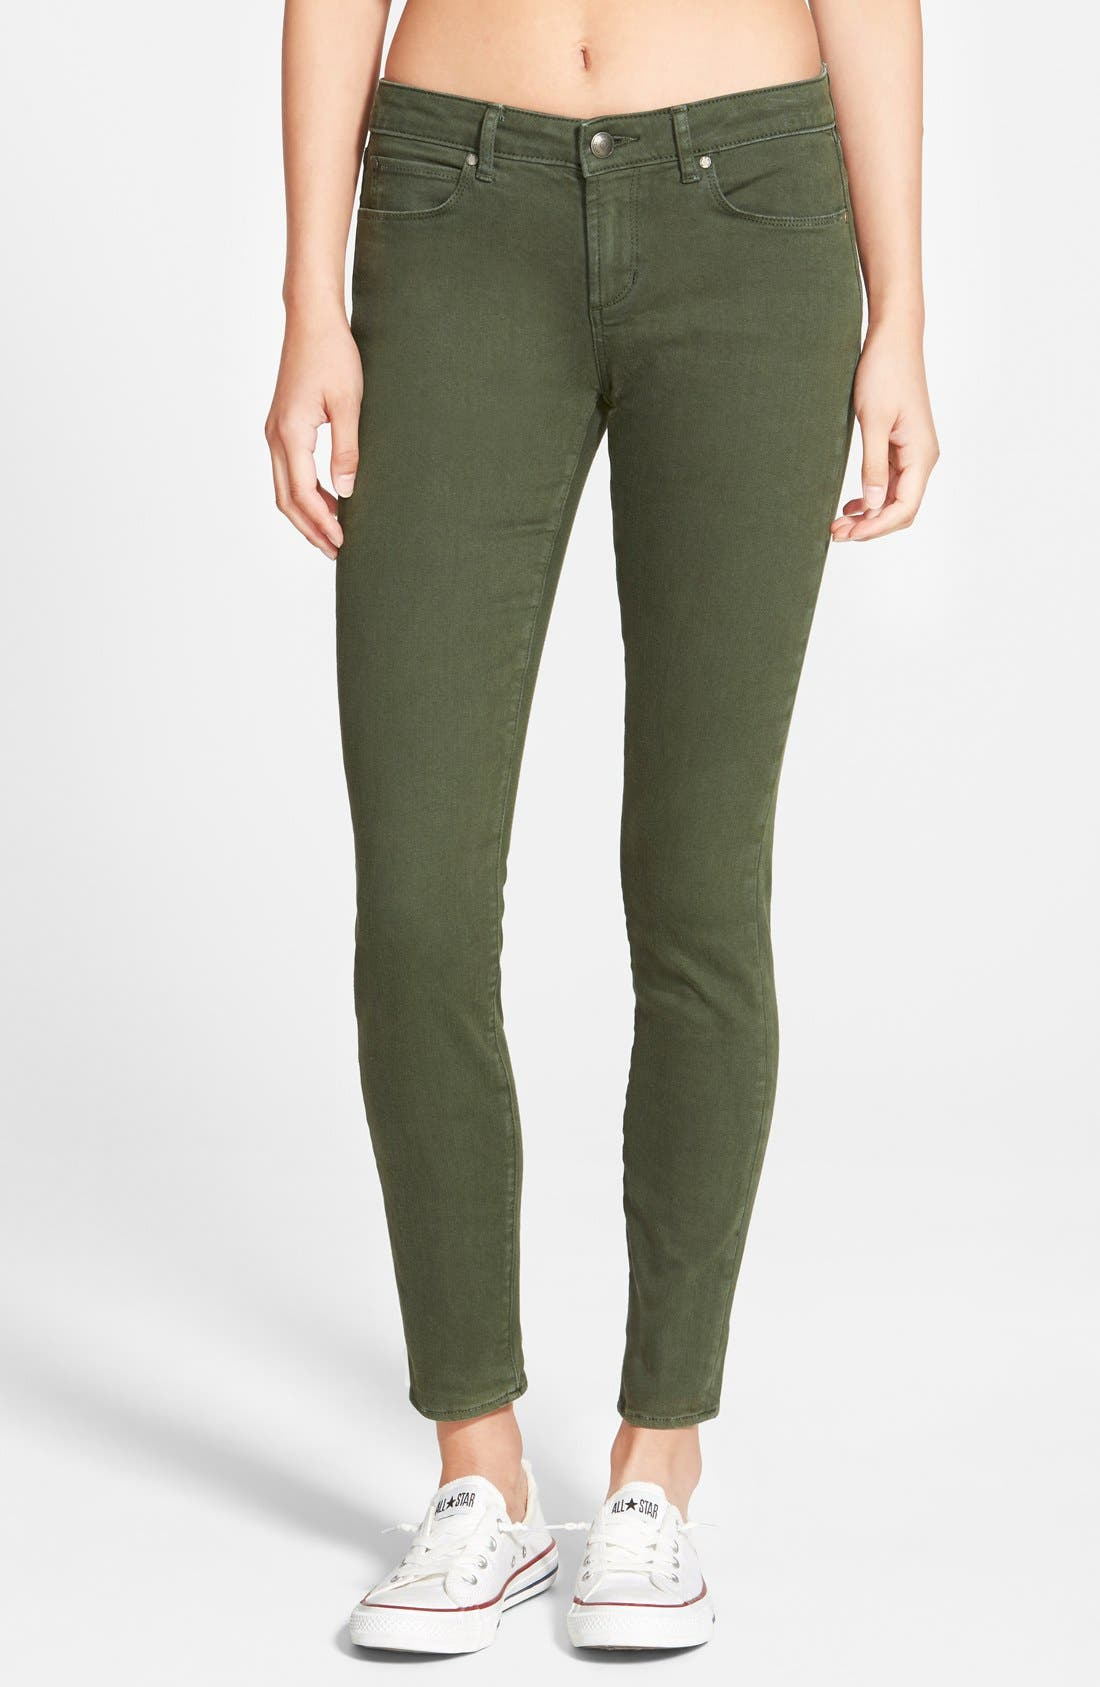 'Cindy' Overdye Skinny Jeans, Main, color, 300